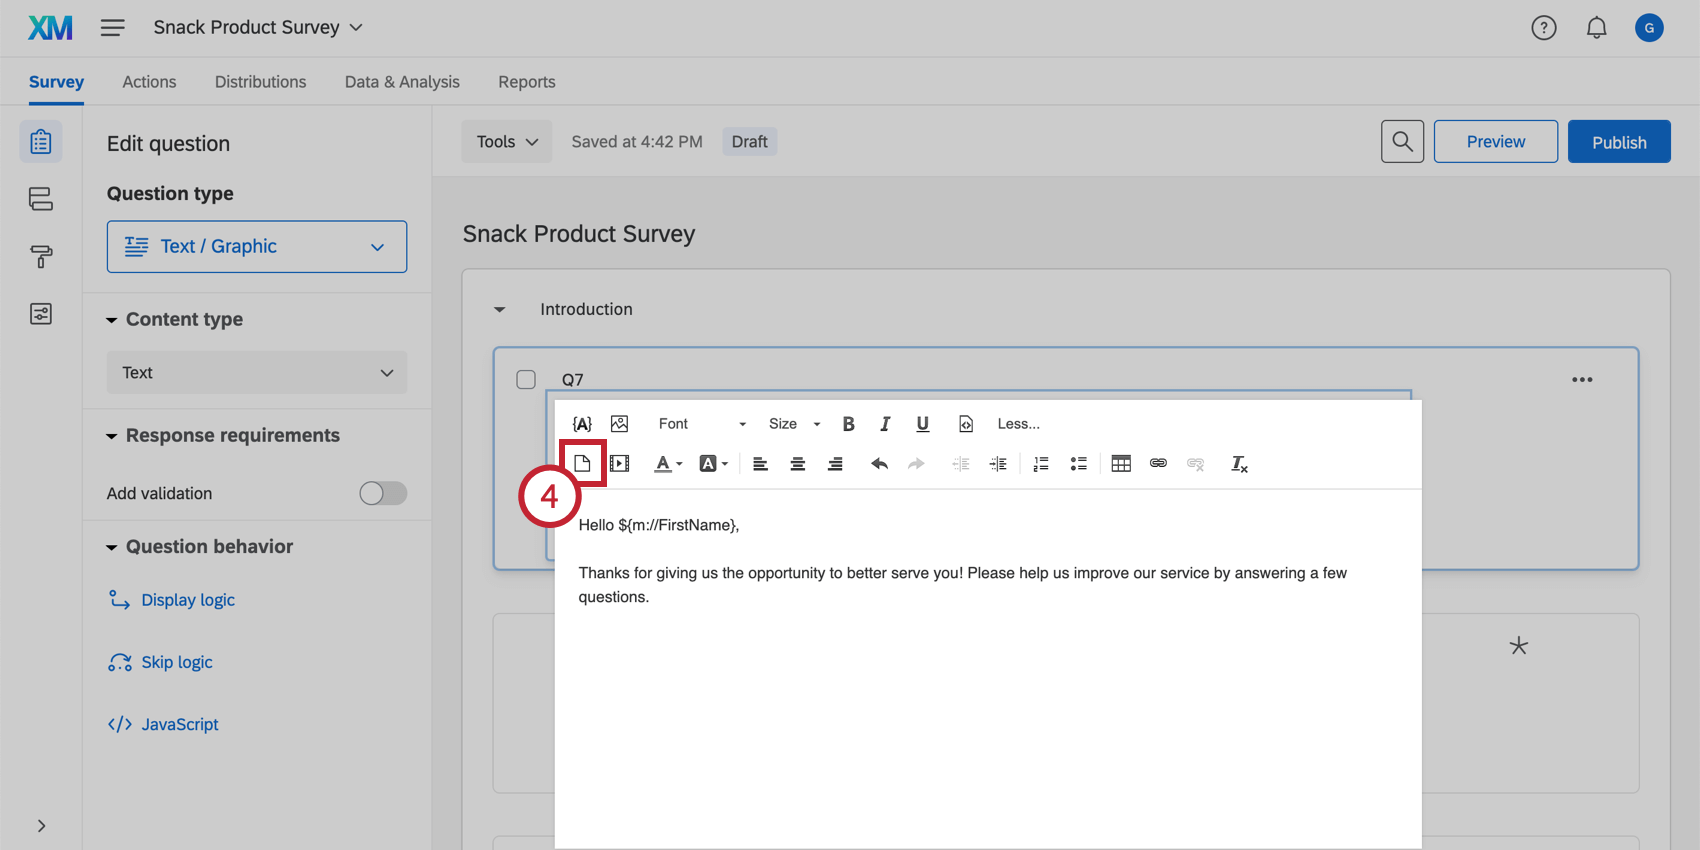 Insert File option in the rich content editor